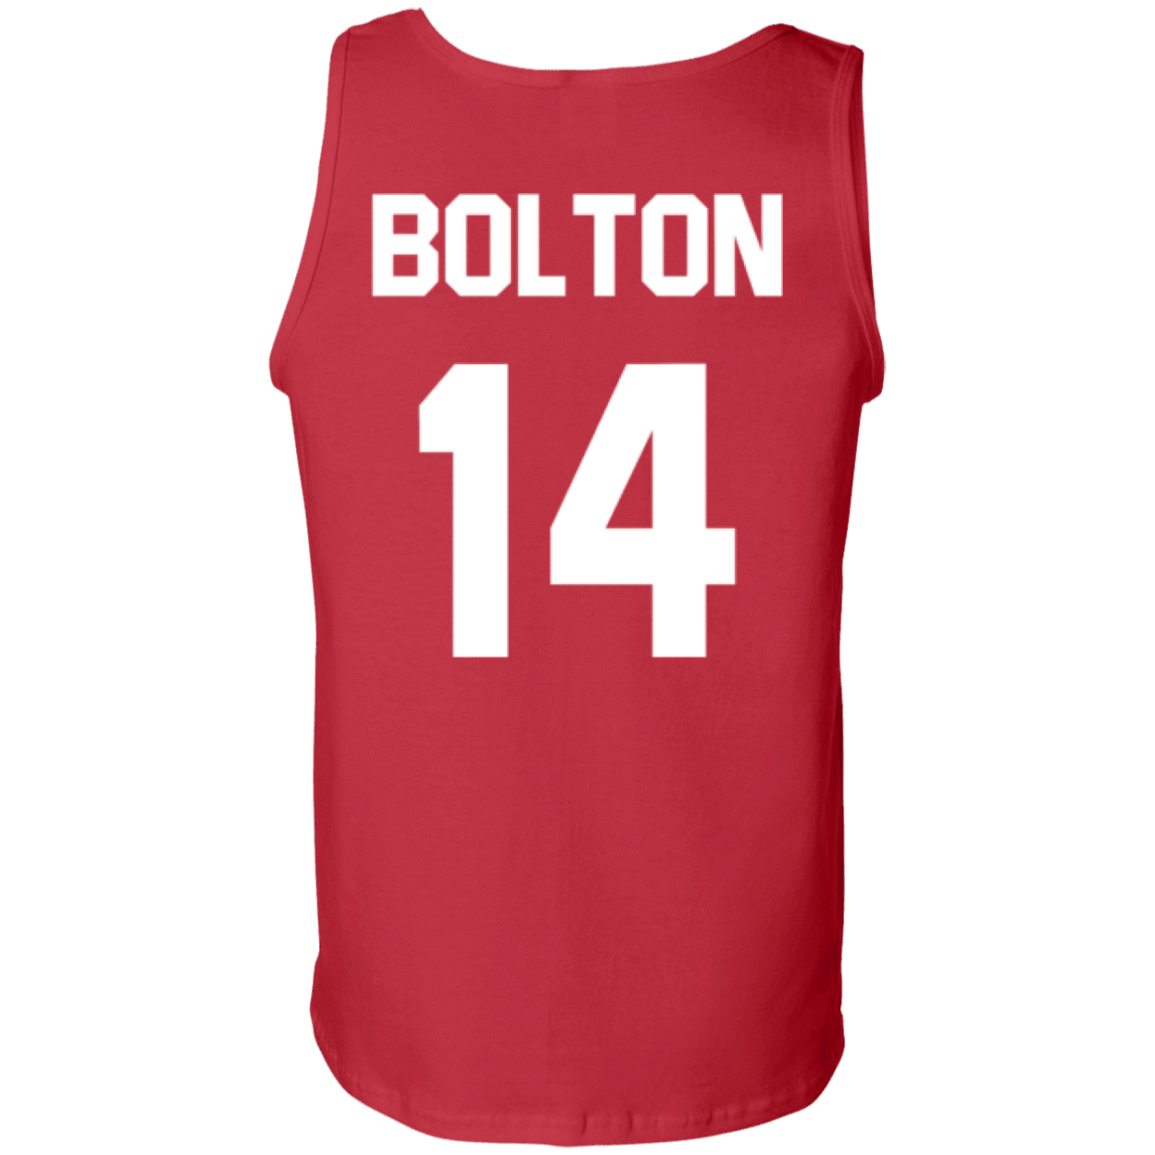 682fa9326 Troy Bolton Wildcats Tank Top Efron 14 - Jersey Champs